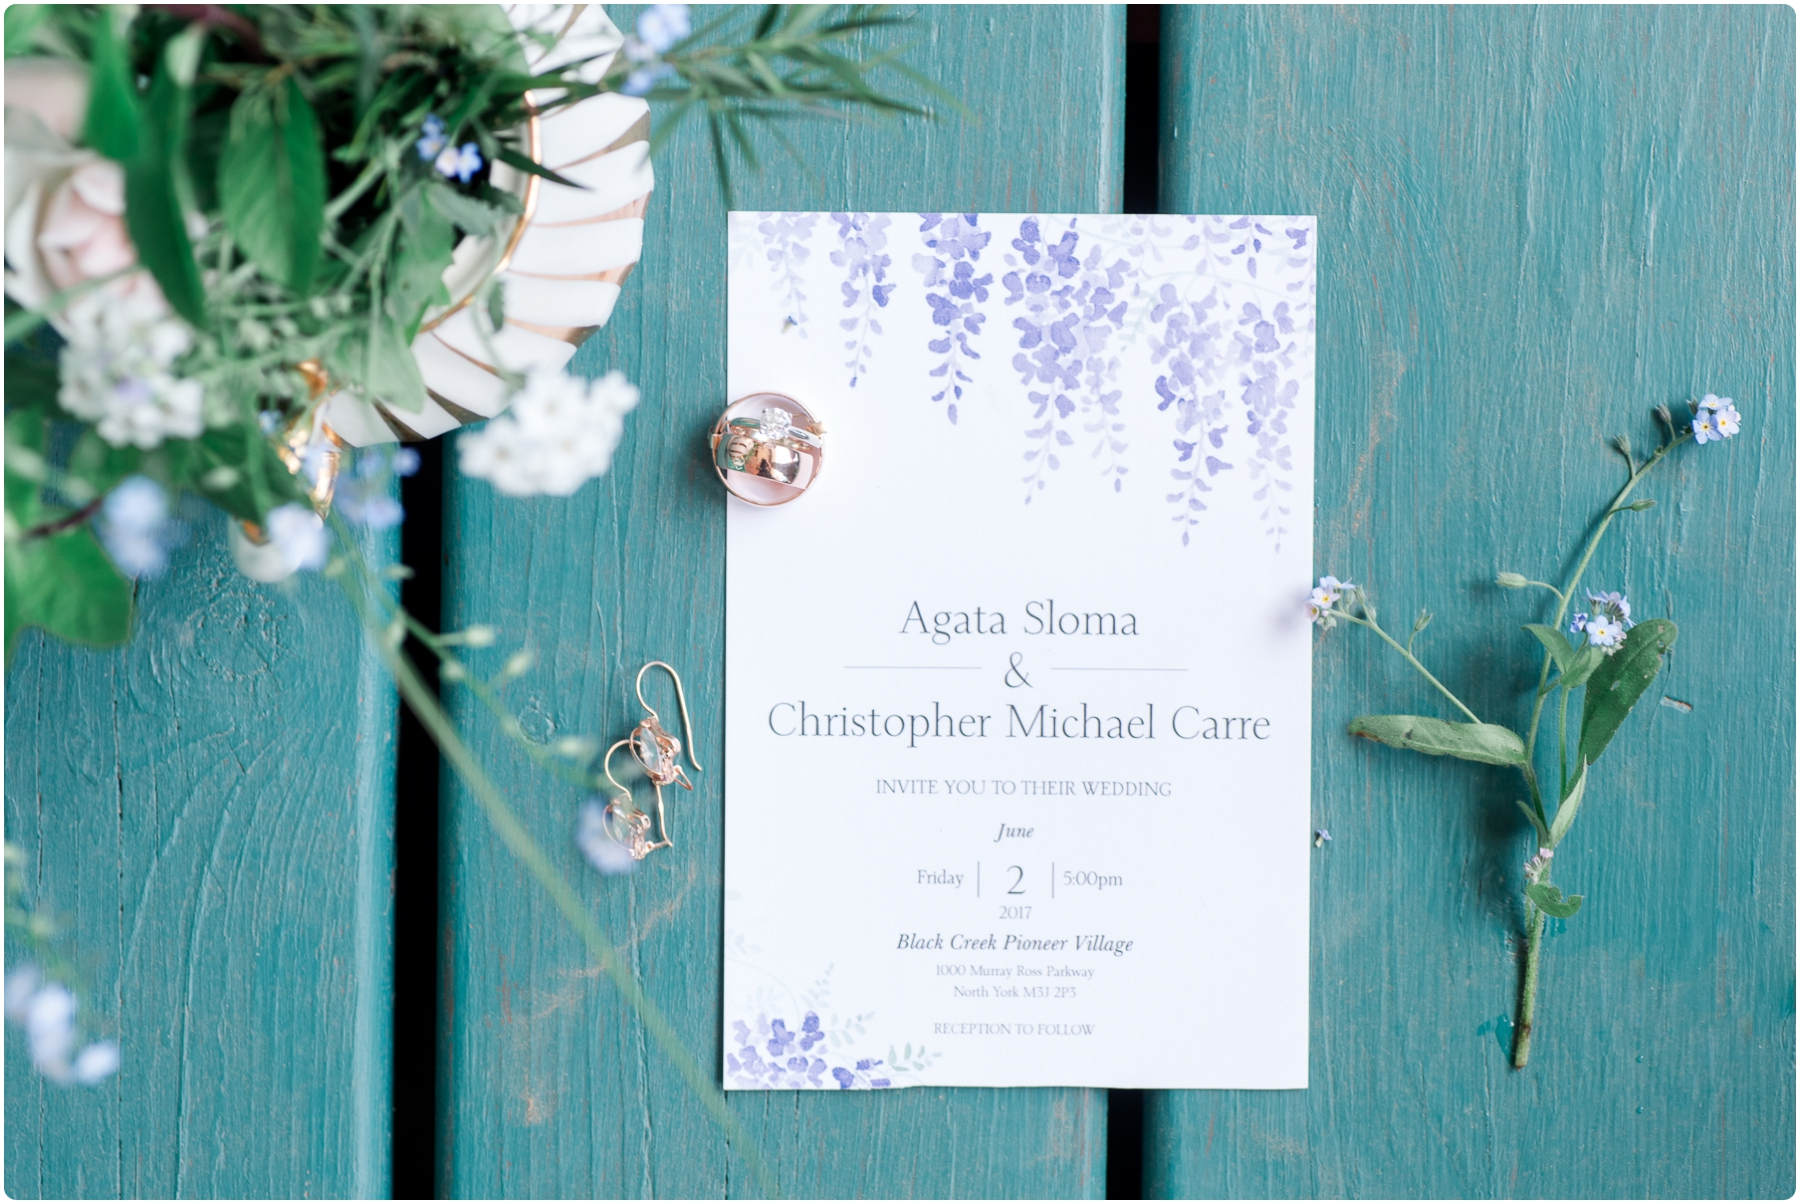 wedding details such as rings, invitation and flowers